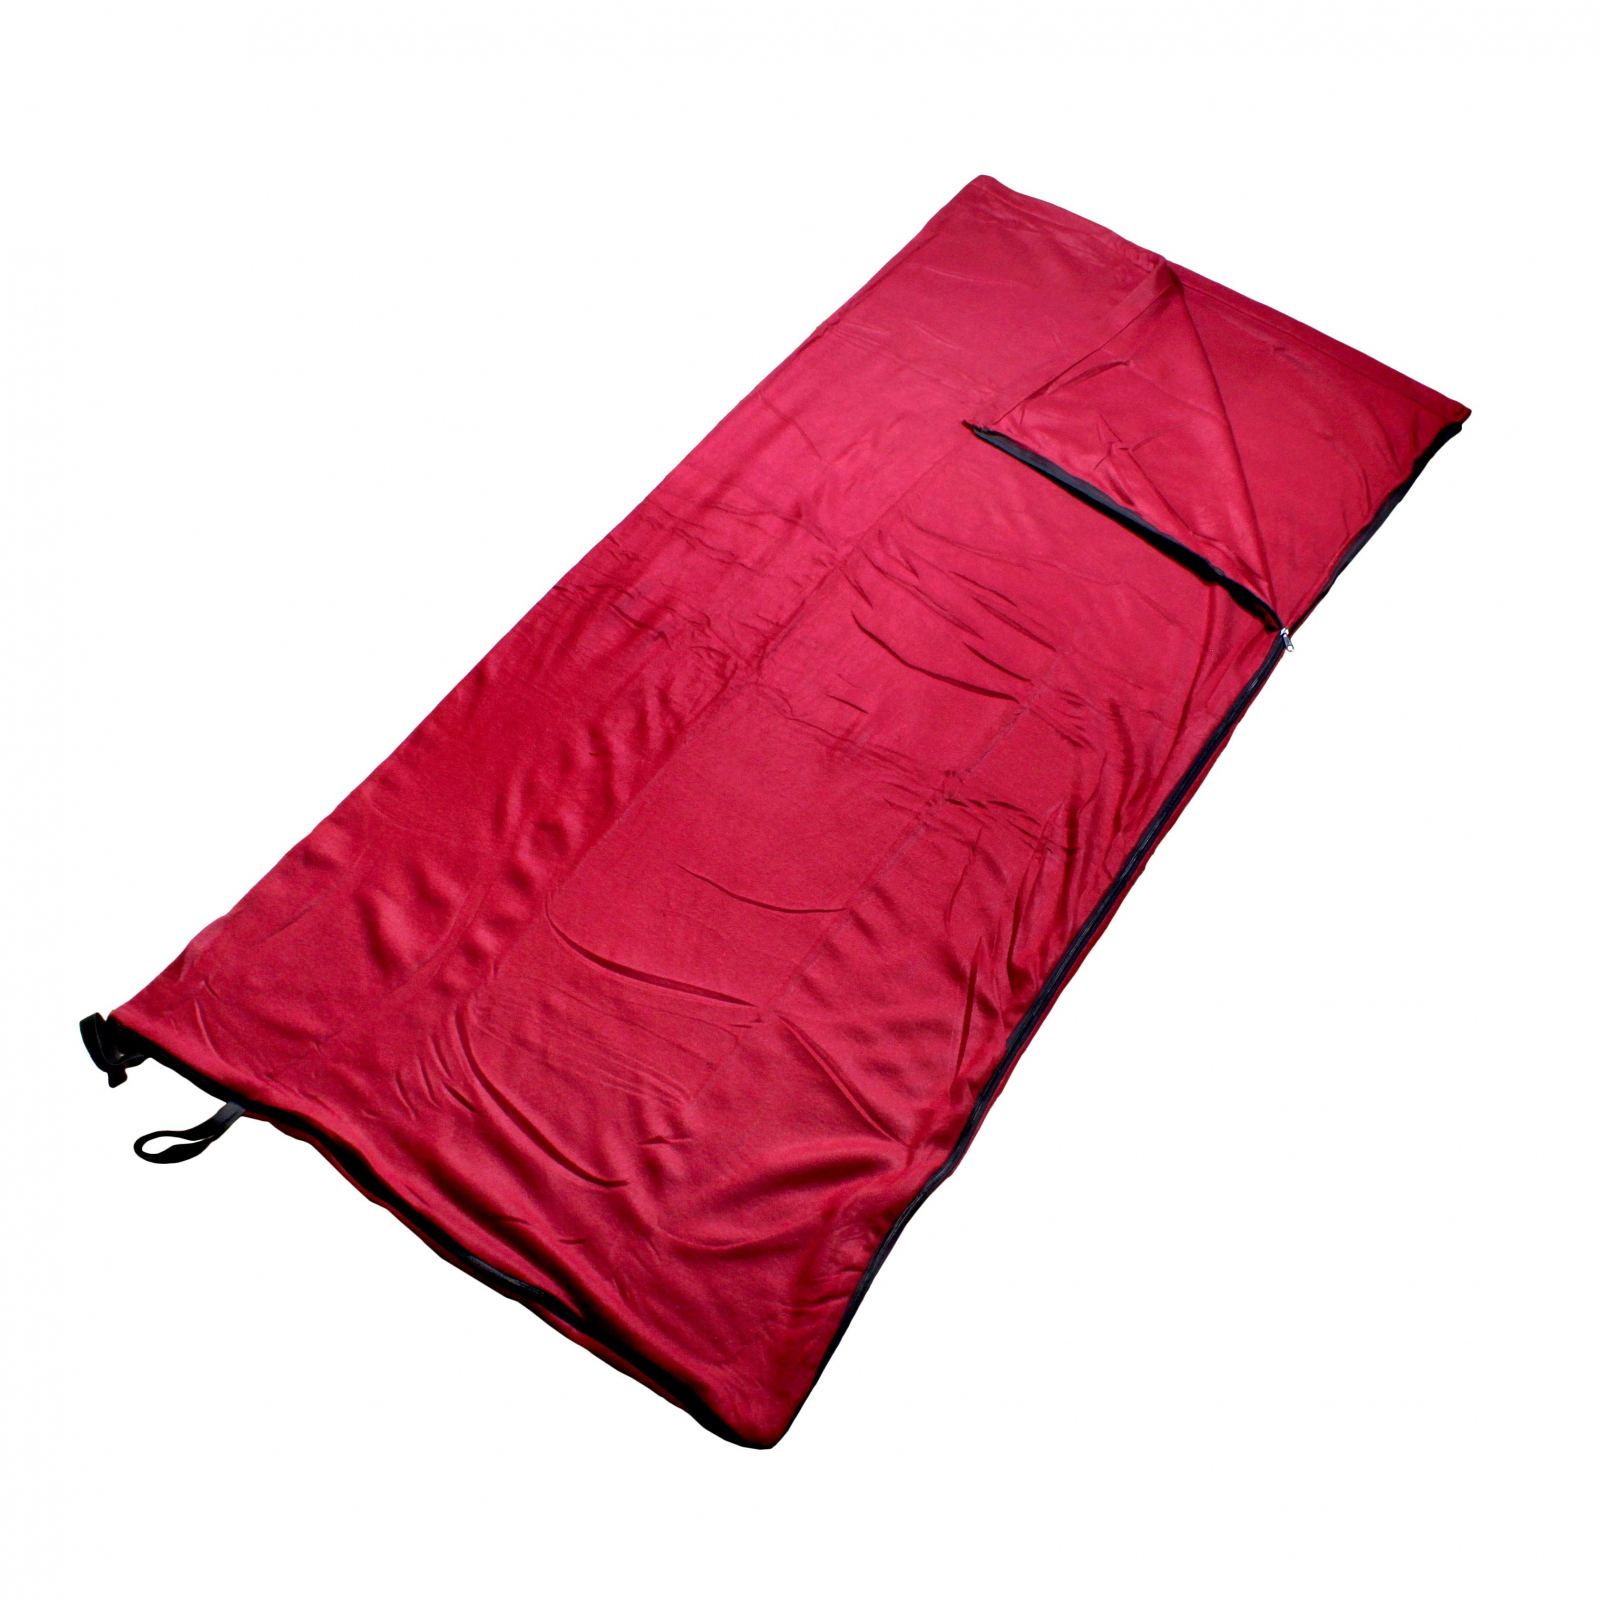 ASR Outdoor Cotton Fleece Fabric Blanket Winter Summer Camping Sleeping Bag Liner with Nylon Storage Bag, Red, 75 x 66 inches